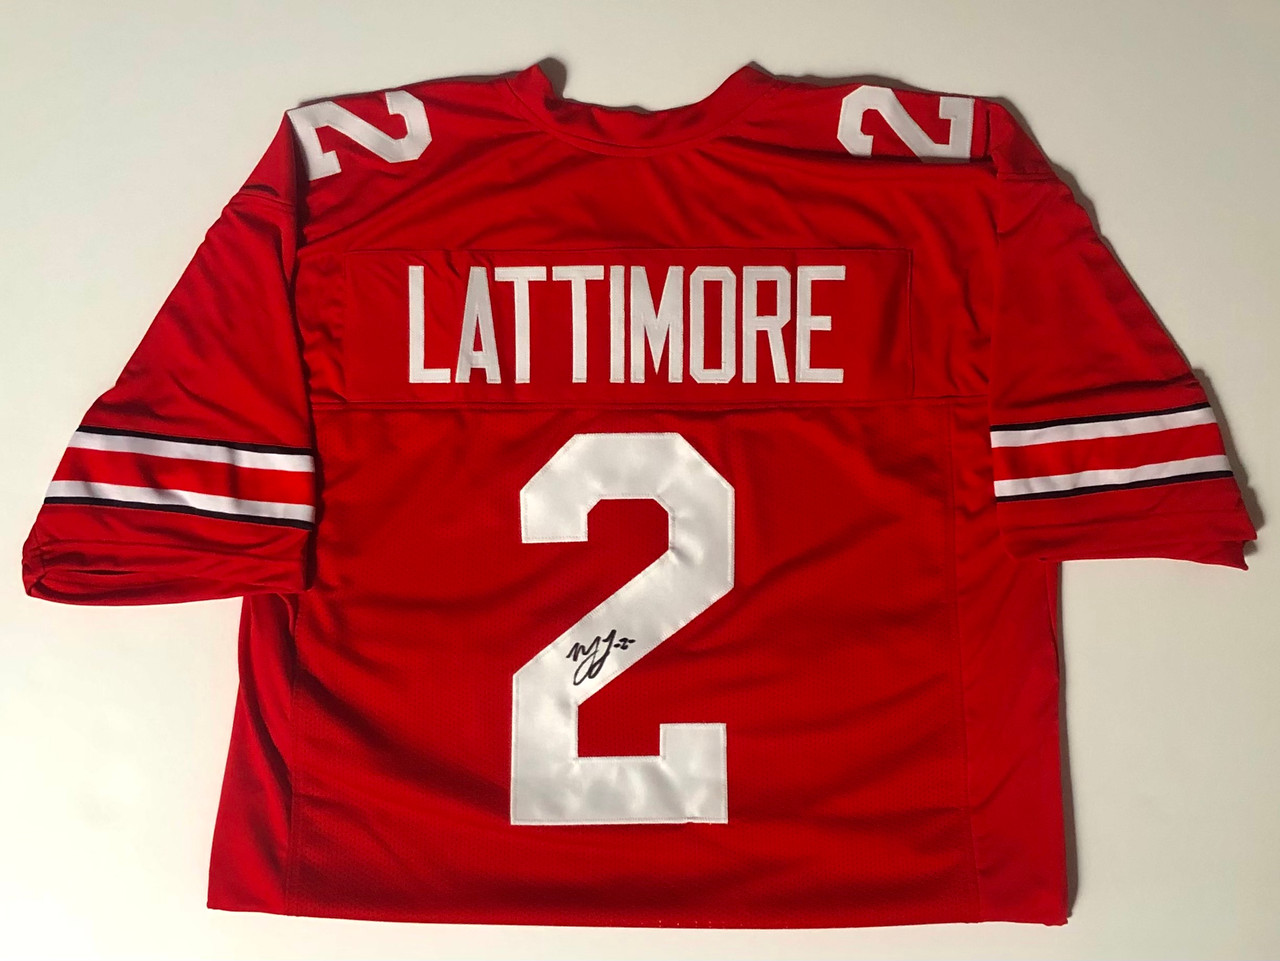 Marshon Lattimore Ohio State Buckeyes Autographed Jersey - Certified Authentic